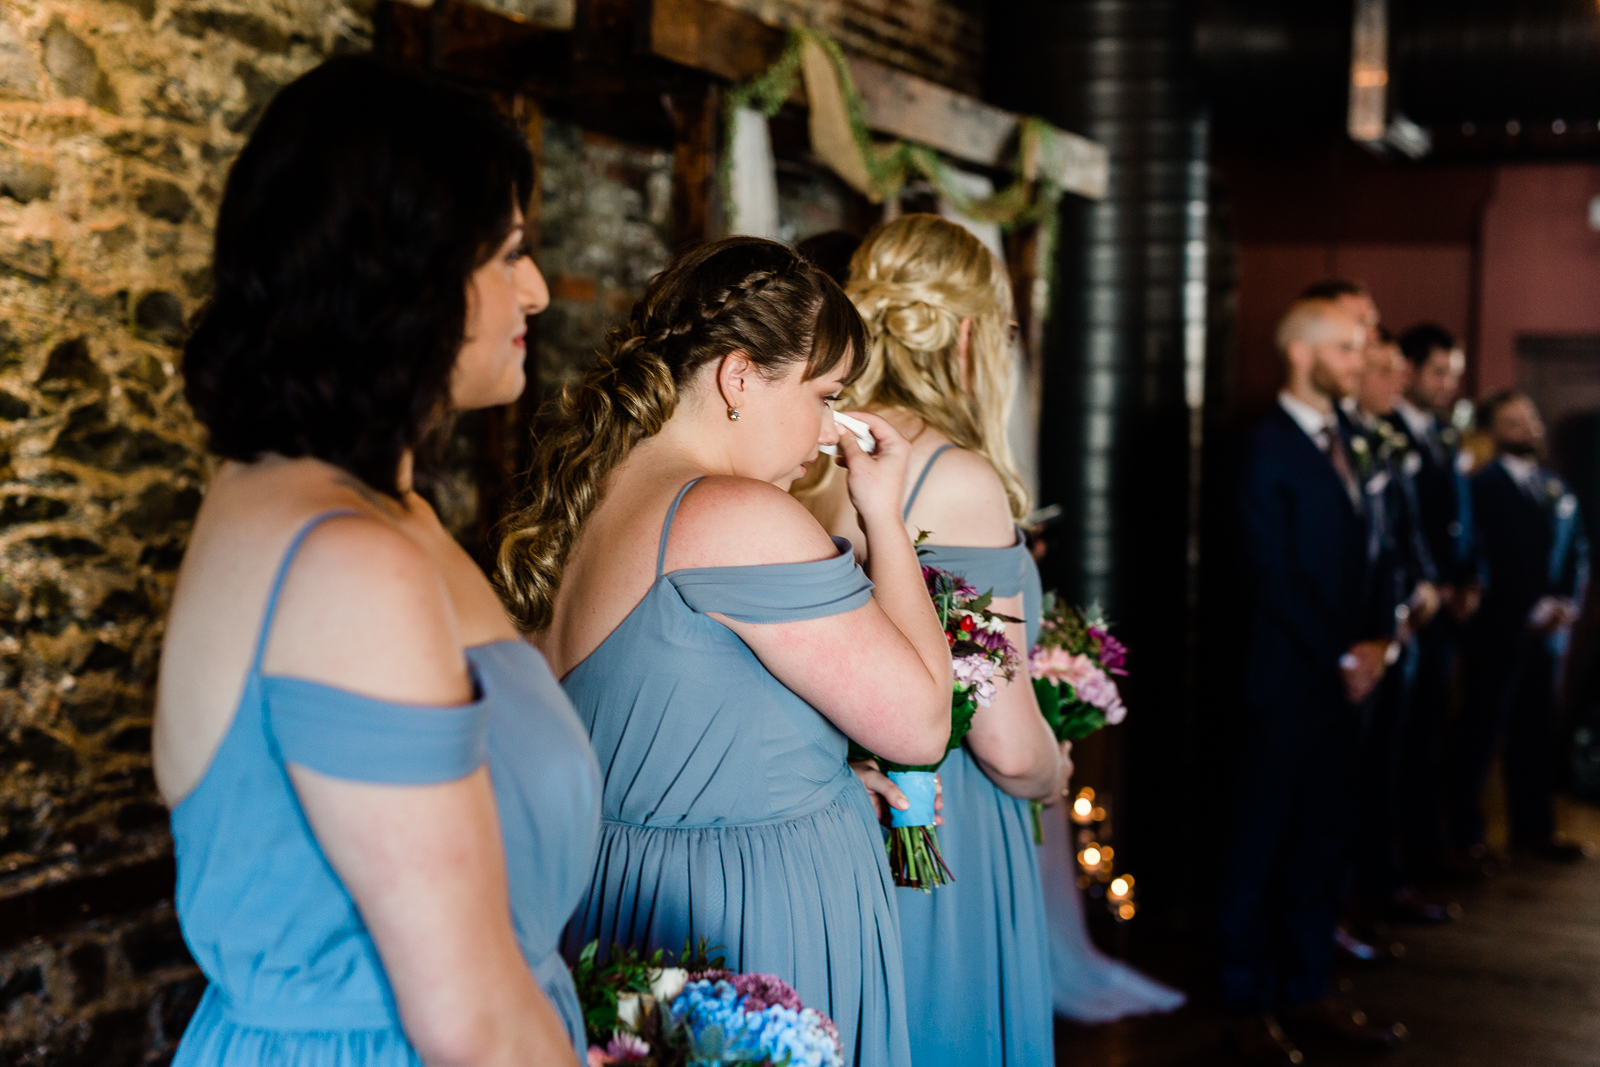 0035st-johns-wedding-photographer-caitlin-adam-yellowbelly.jpg